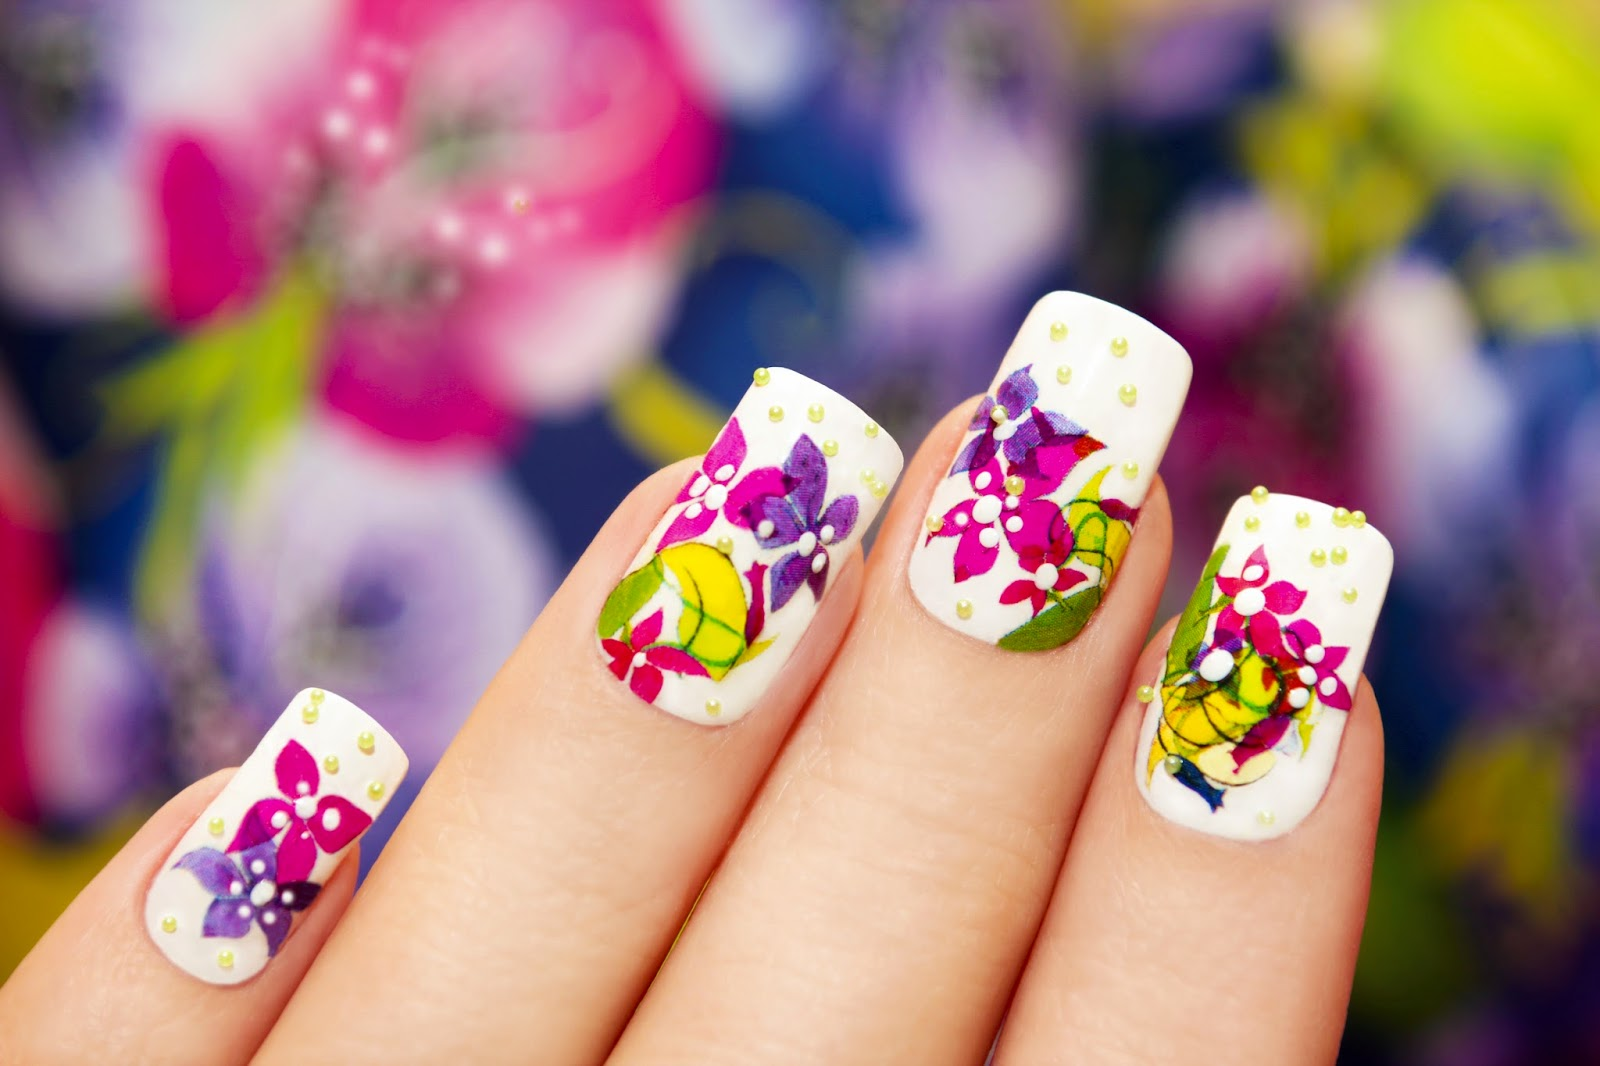 New letest nail art hd wallpaperimegeand best nail polis hd best nail art wallpaper prinsesfo Image collections